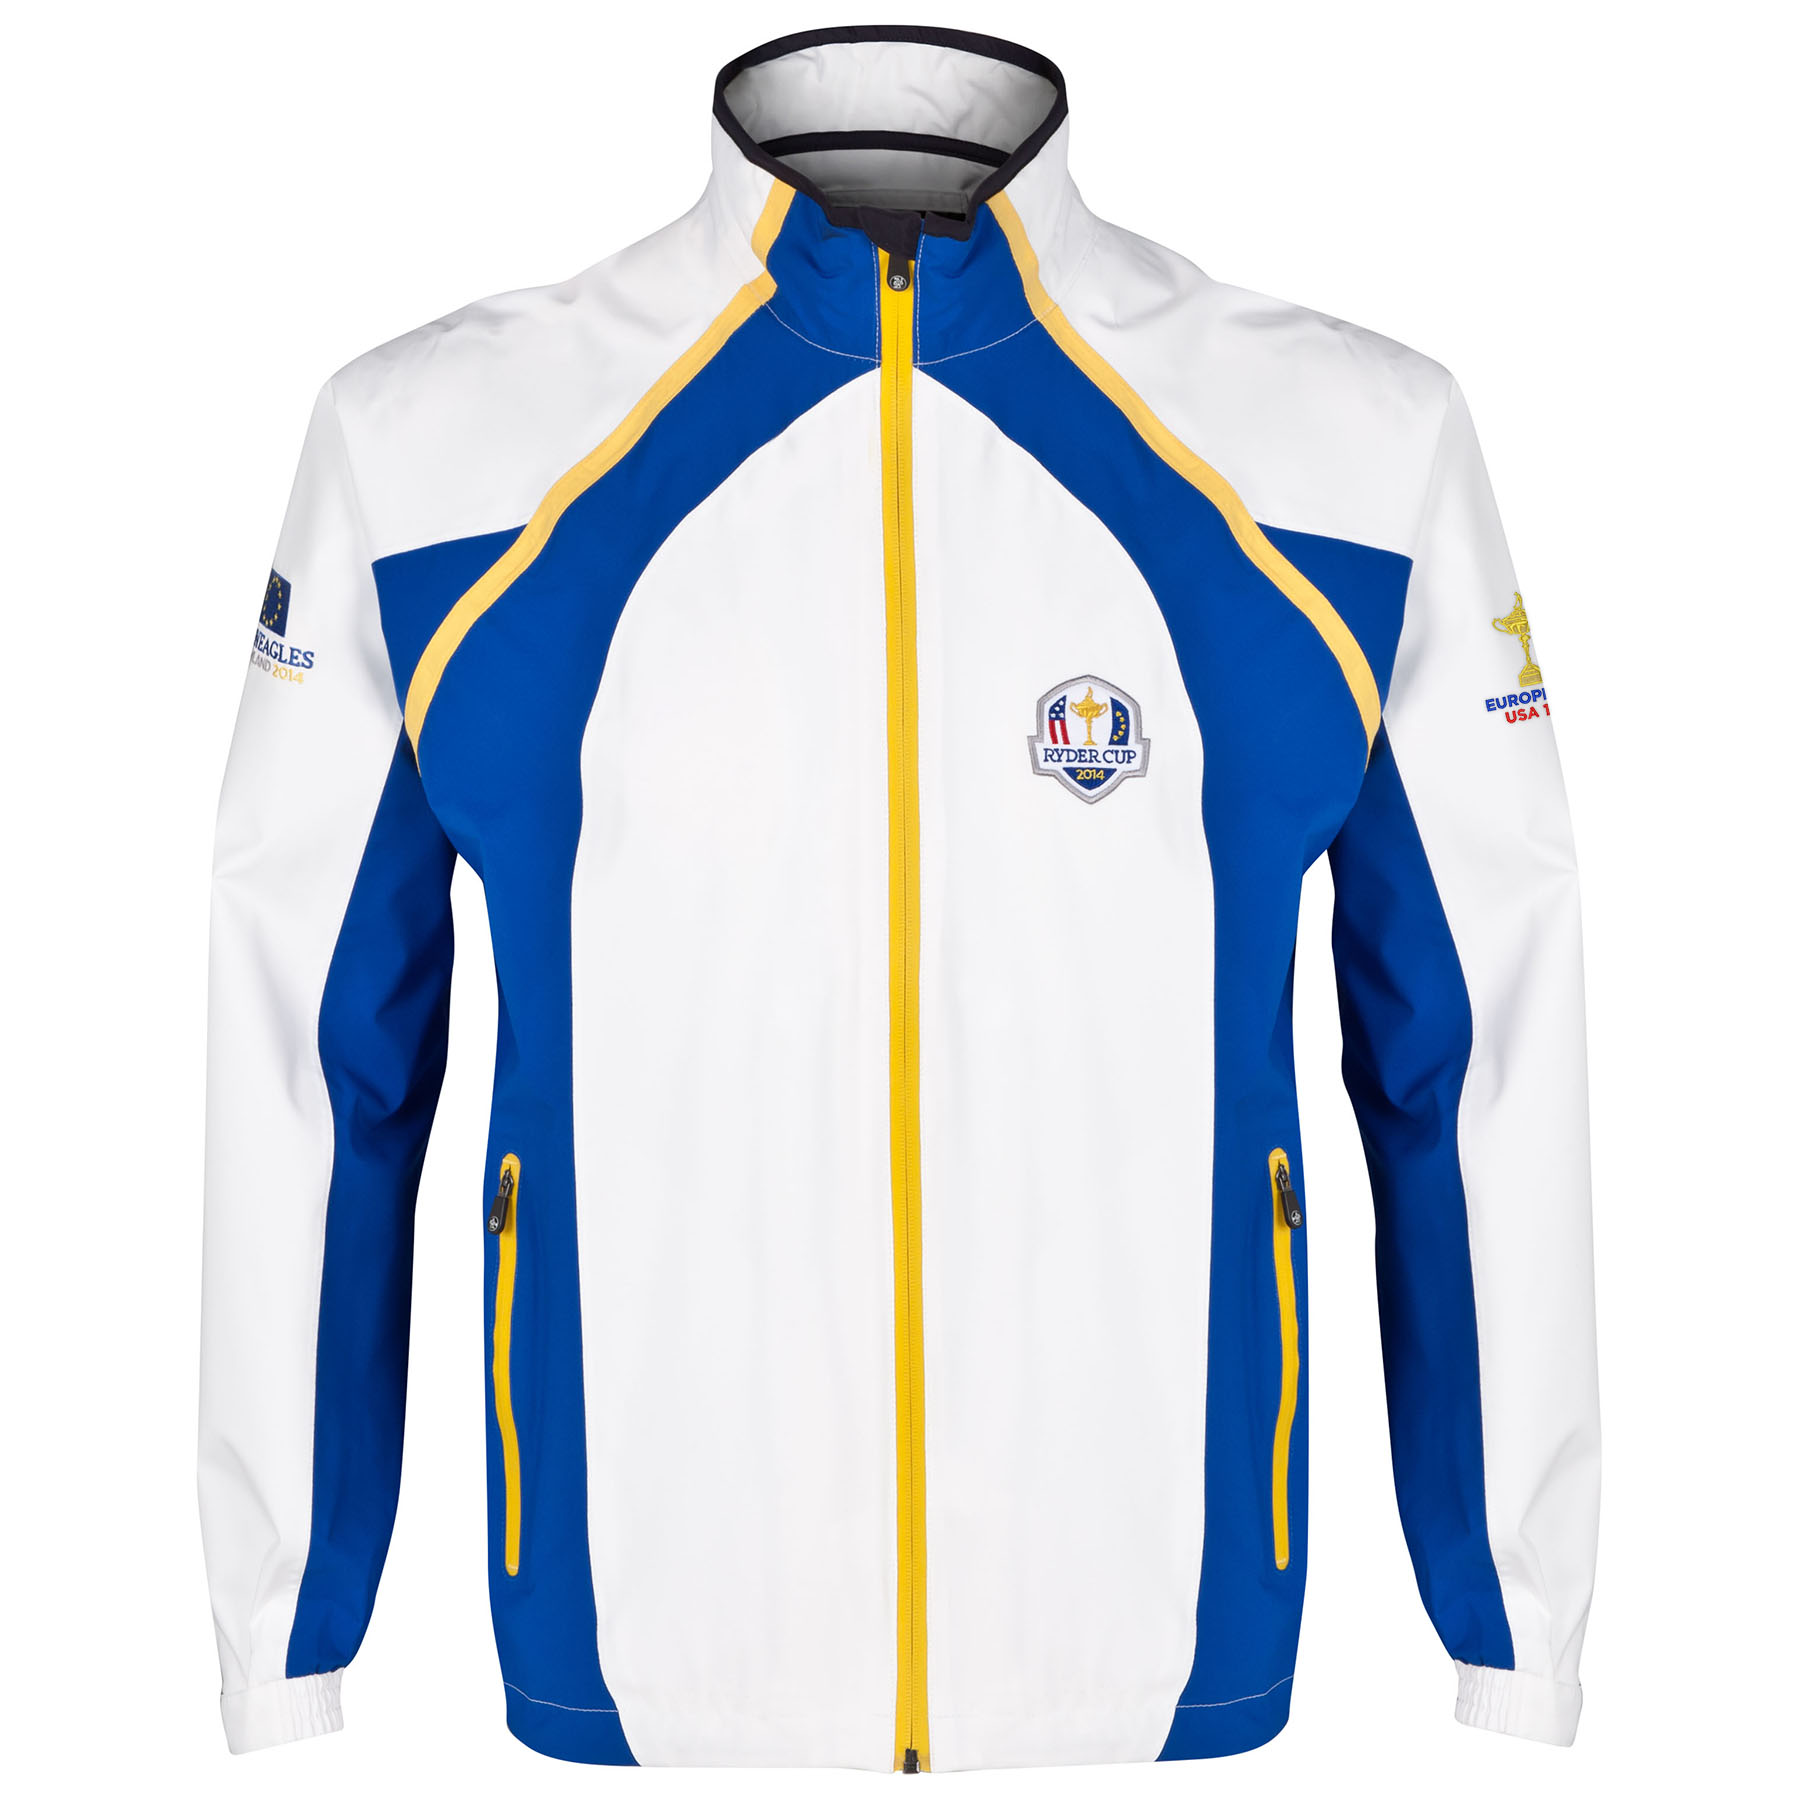 The 2014 Ryder Cup ProQuip Winners Team Jacket - White